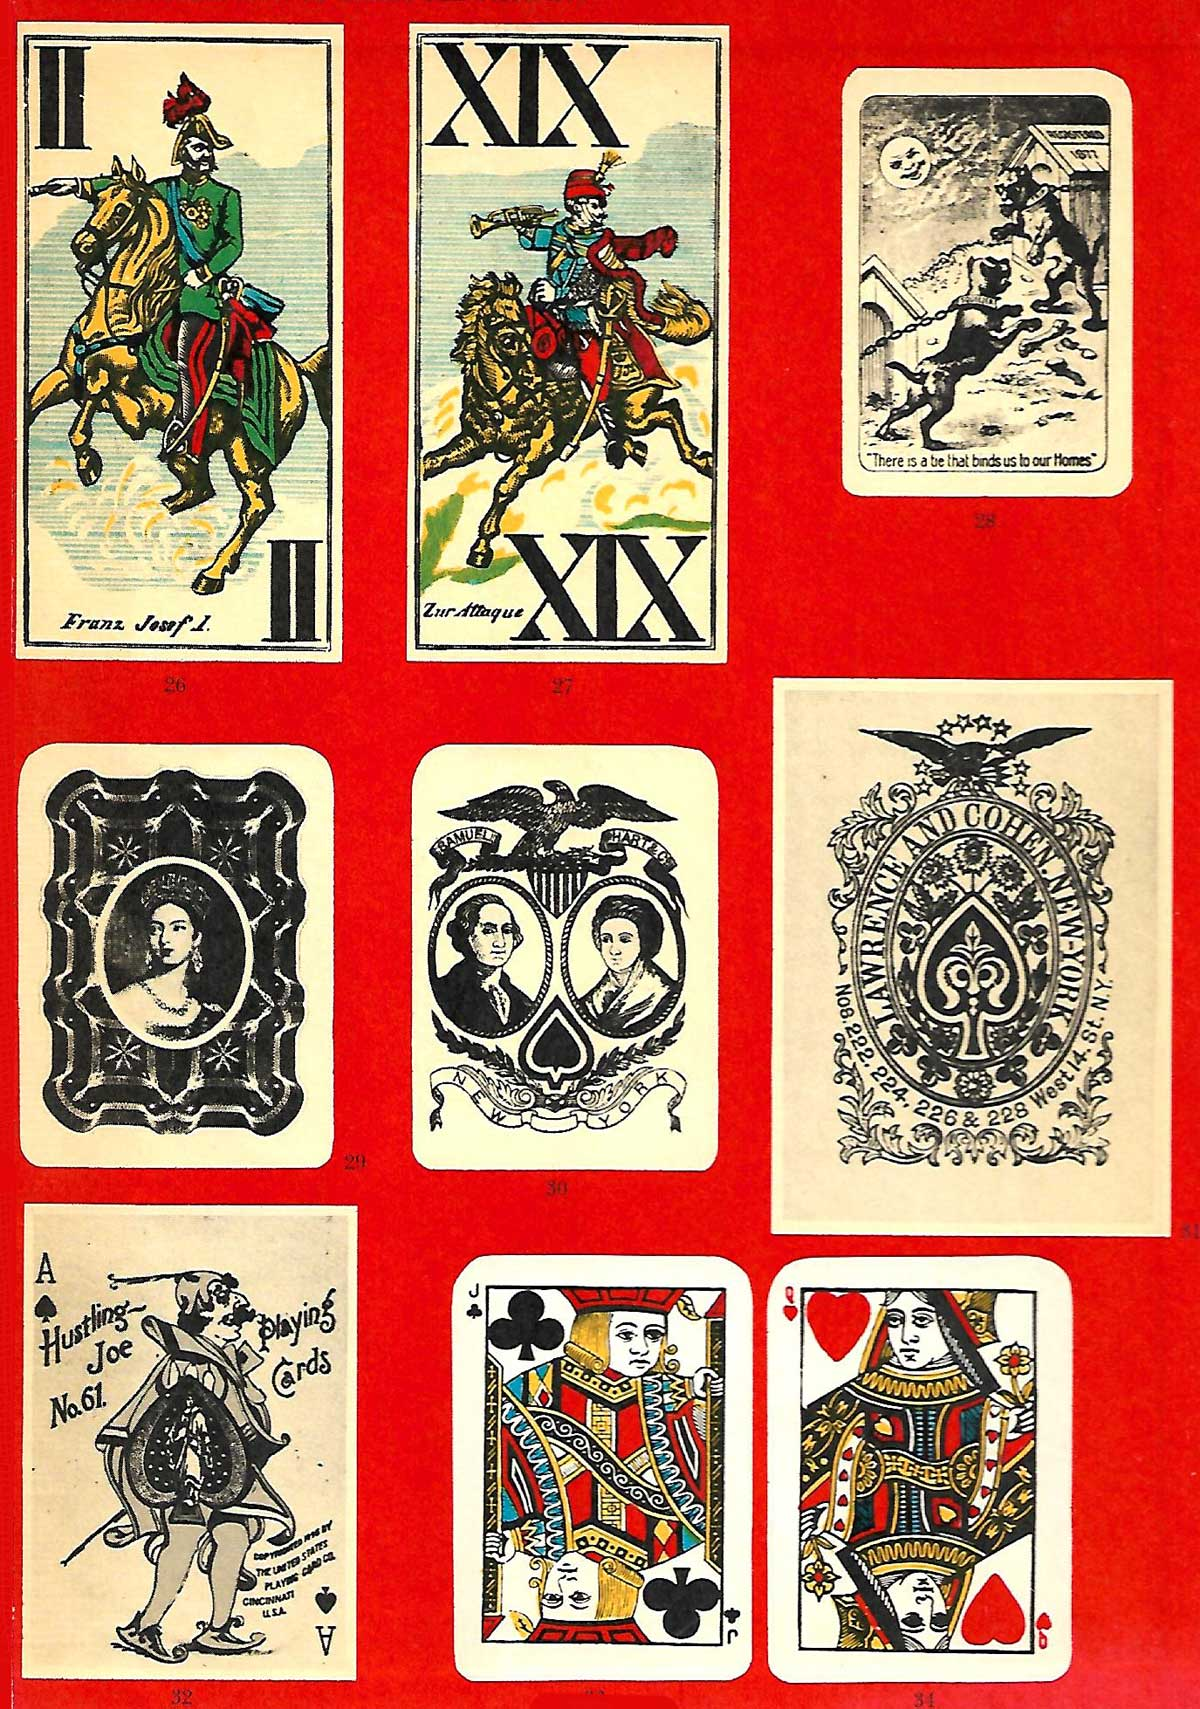 endpaper #4 from Fireside Book of Playing Cards edited by Oswald Jacoby and Albert Morehead, published by Simon & Schuster in 1957